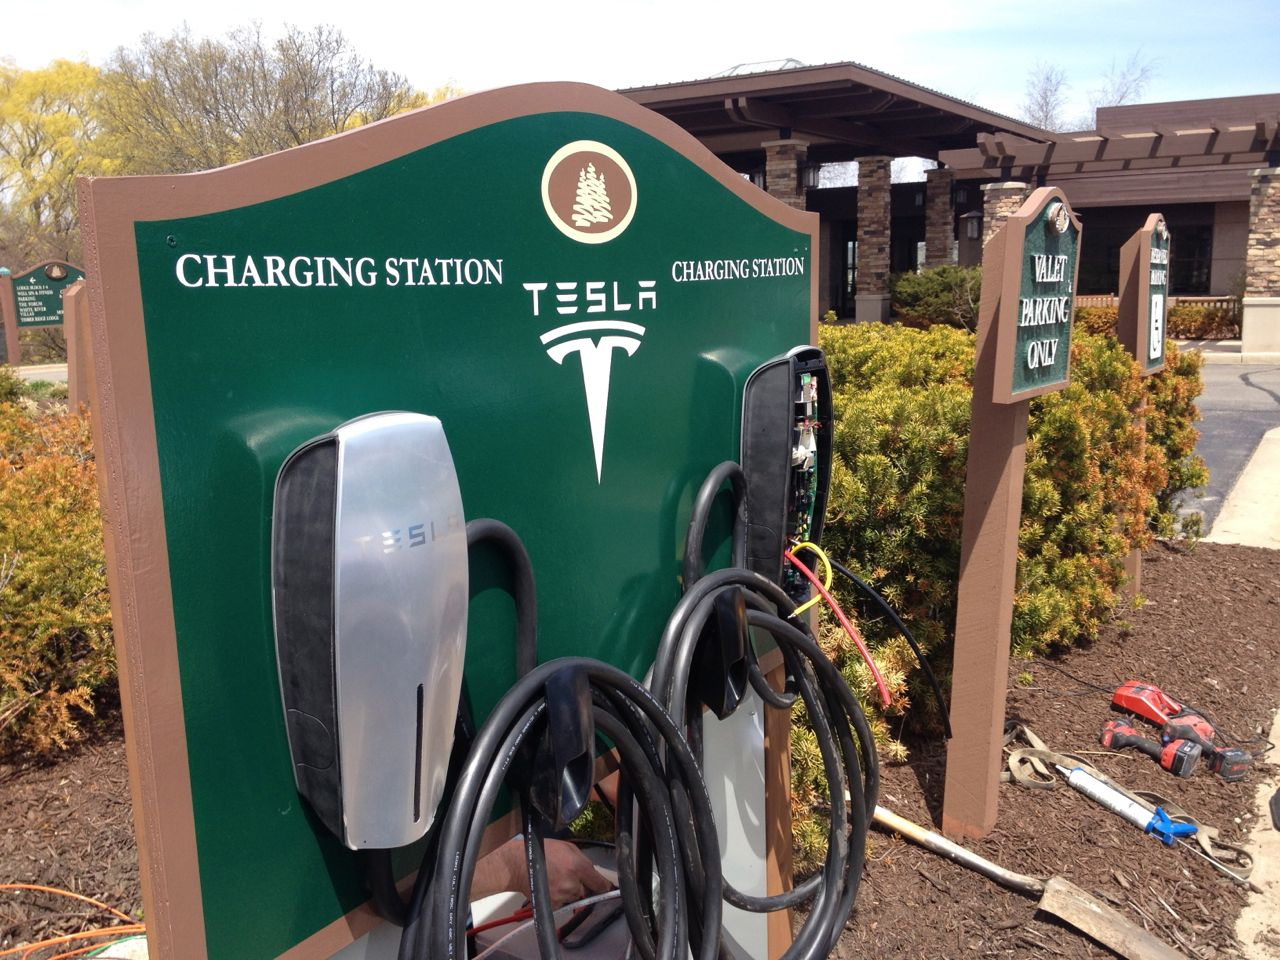 Tesla Chargers popping up all over - 300MPG.org on